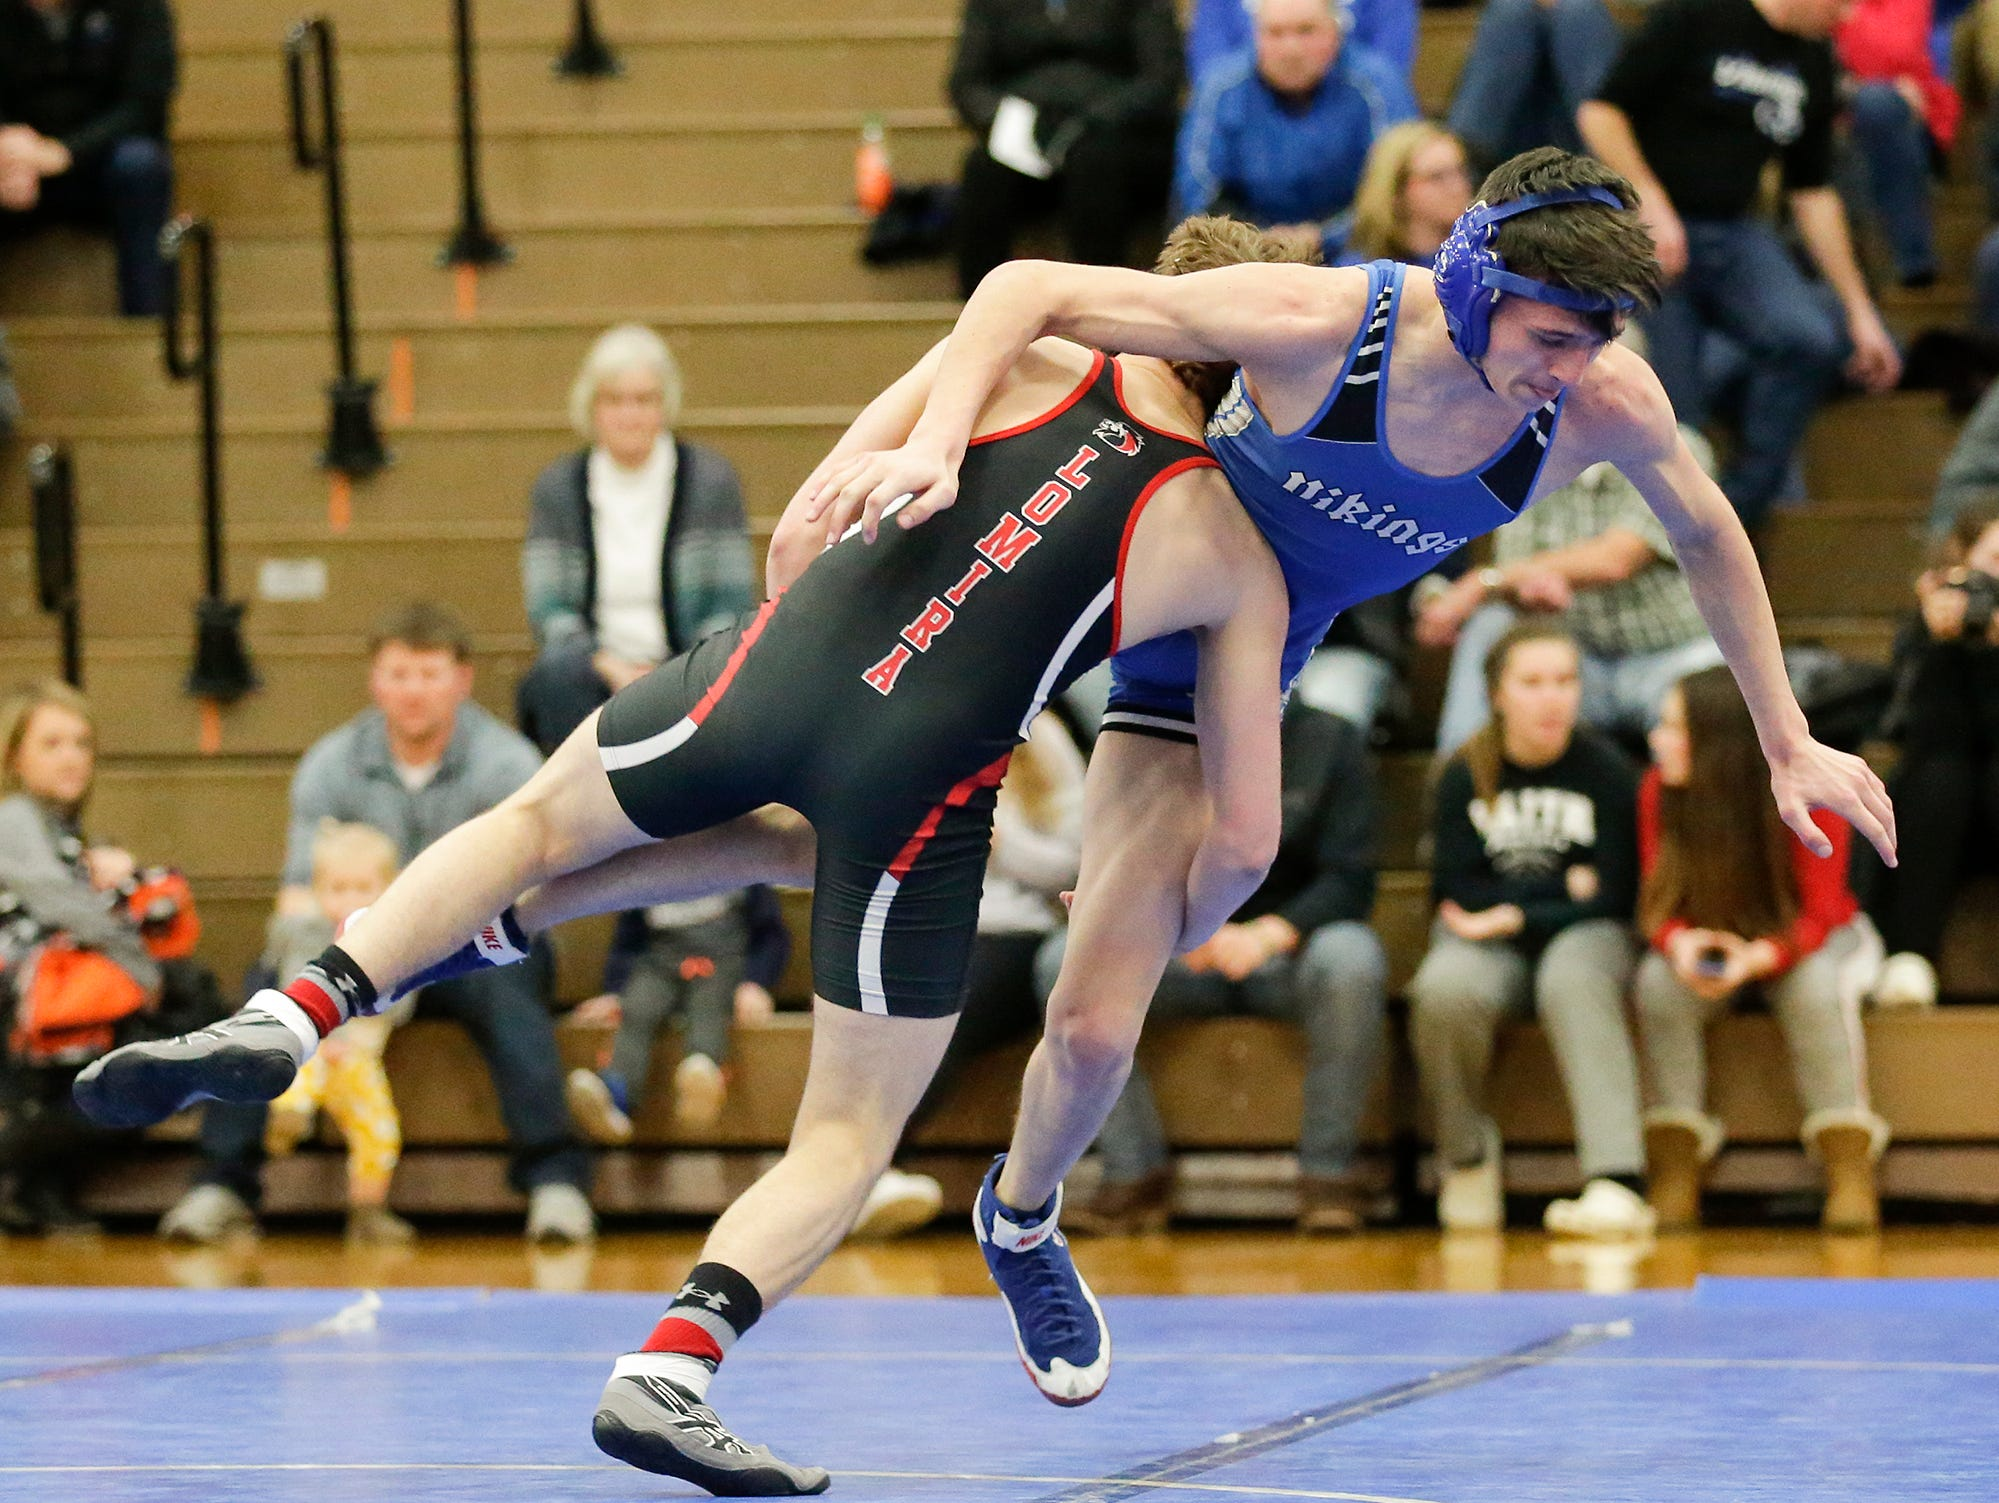 Winnebago Lutheran Academy's Micah Hinds wrestles Adam Sauer of Lomira High School in the 138 pound weight class Thursday, January 17, 2019 in Fond du Lac. Sauer won by a score of 12-5 and Lomira won the meet 51-22. Doug Raflik/USA TODAY NETWORK-Wisconsin